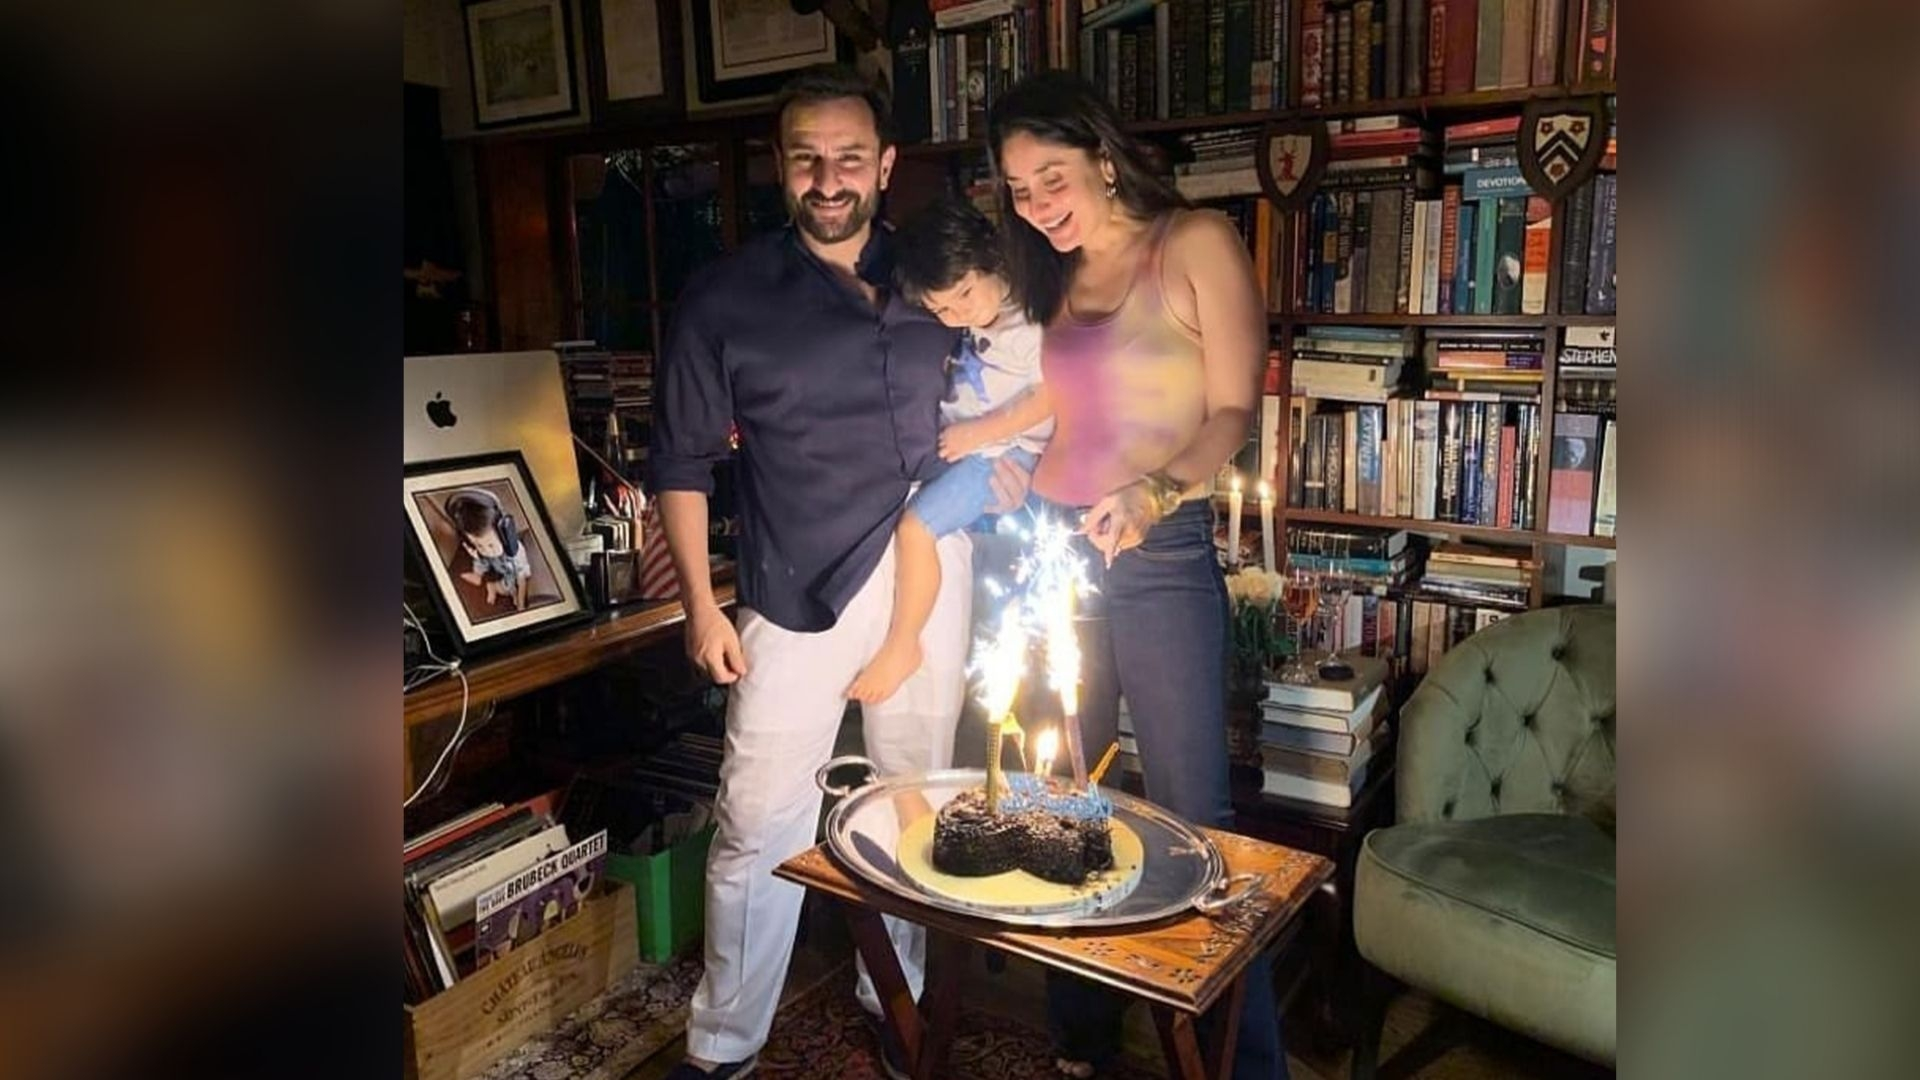 Kareena and Saif Celebrate Their 7th Anniversary With Family